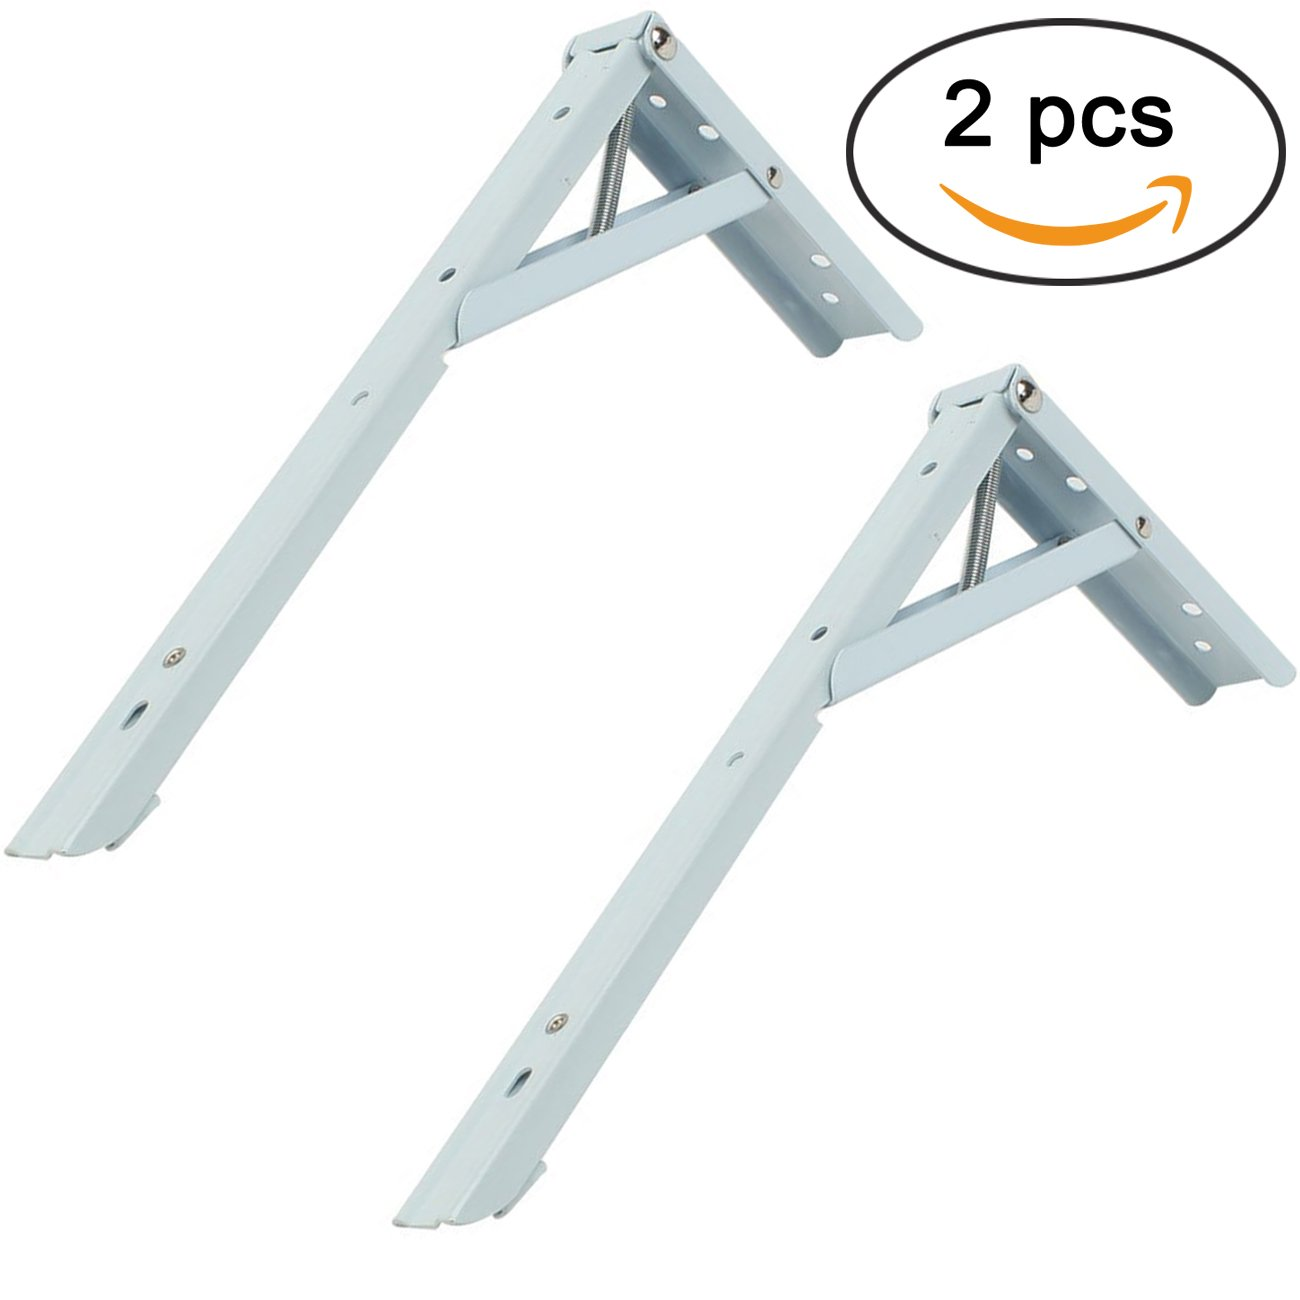 Sunnyglade 2PCS Stainless Steel Spring Loaded Folding Support Shelf Bracket/Bench Table Folding Shelf with 8 Screws (12'')